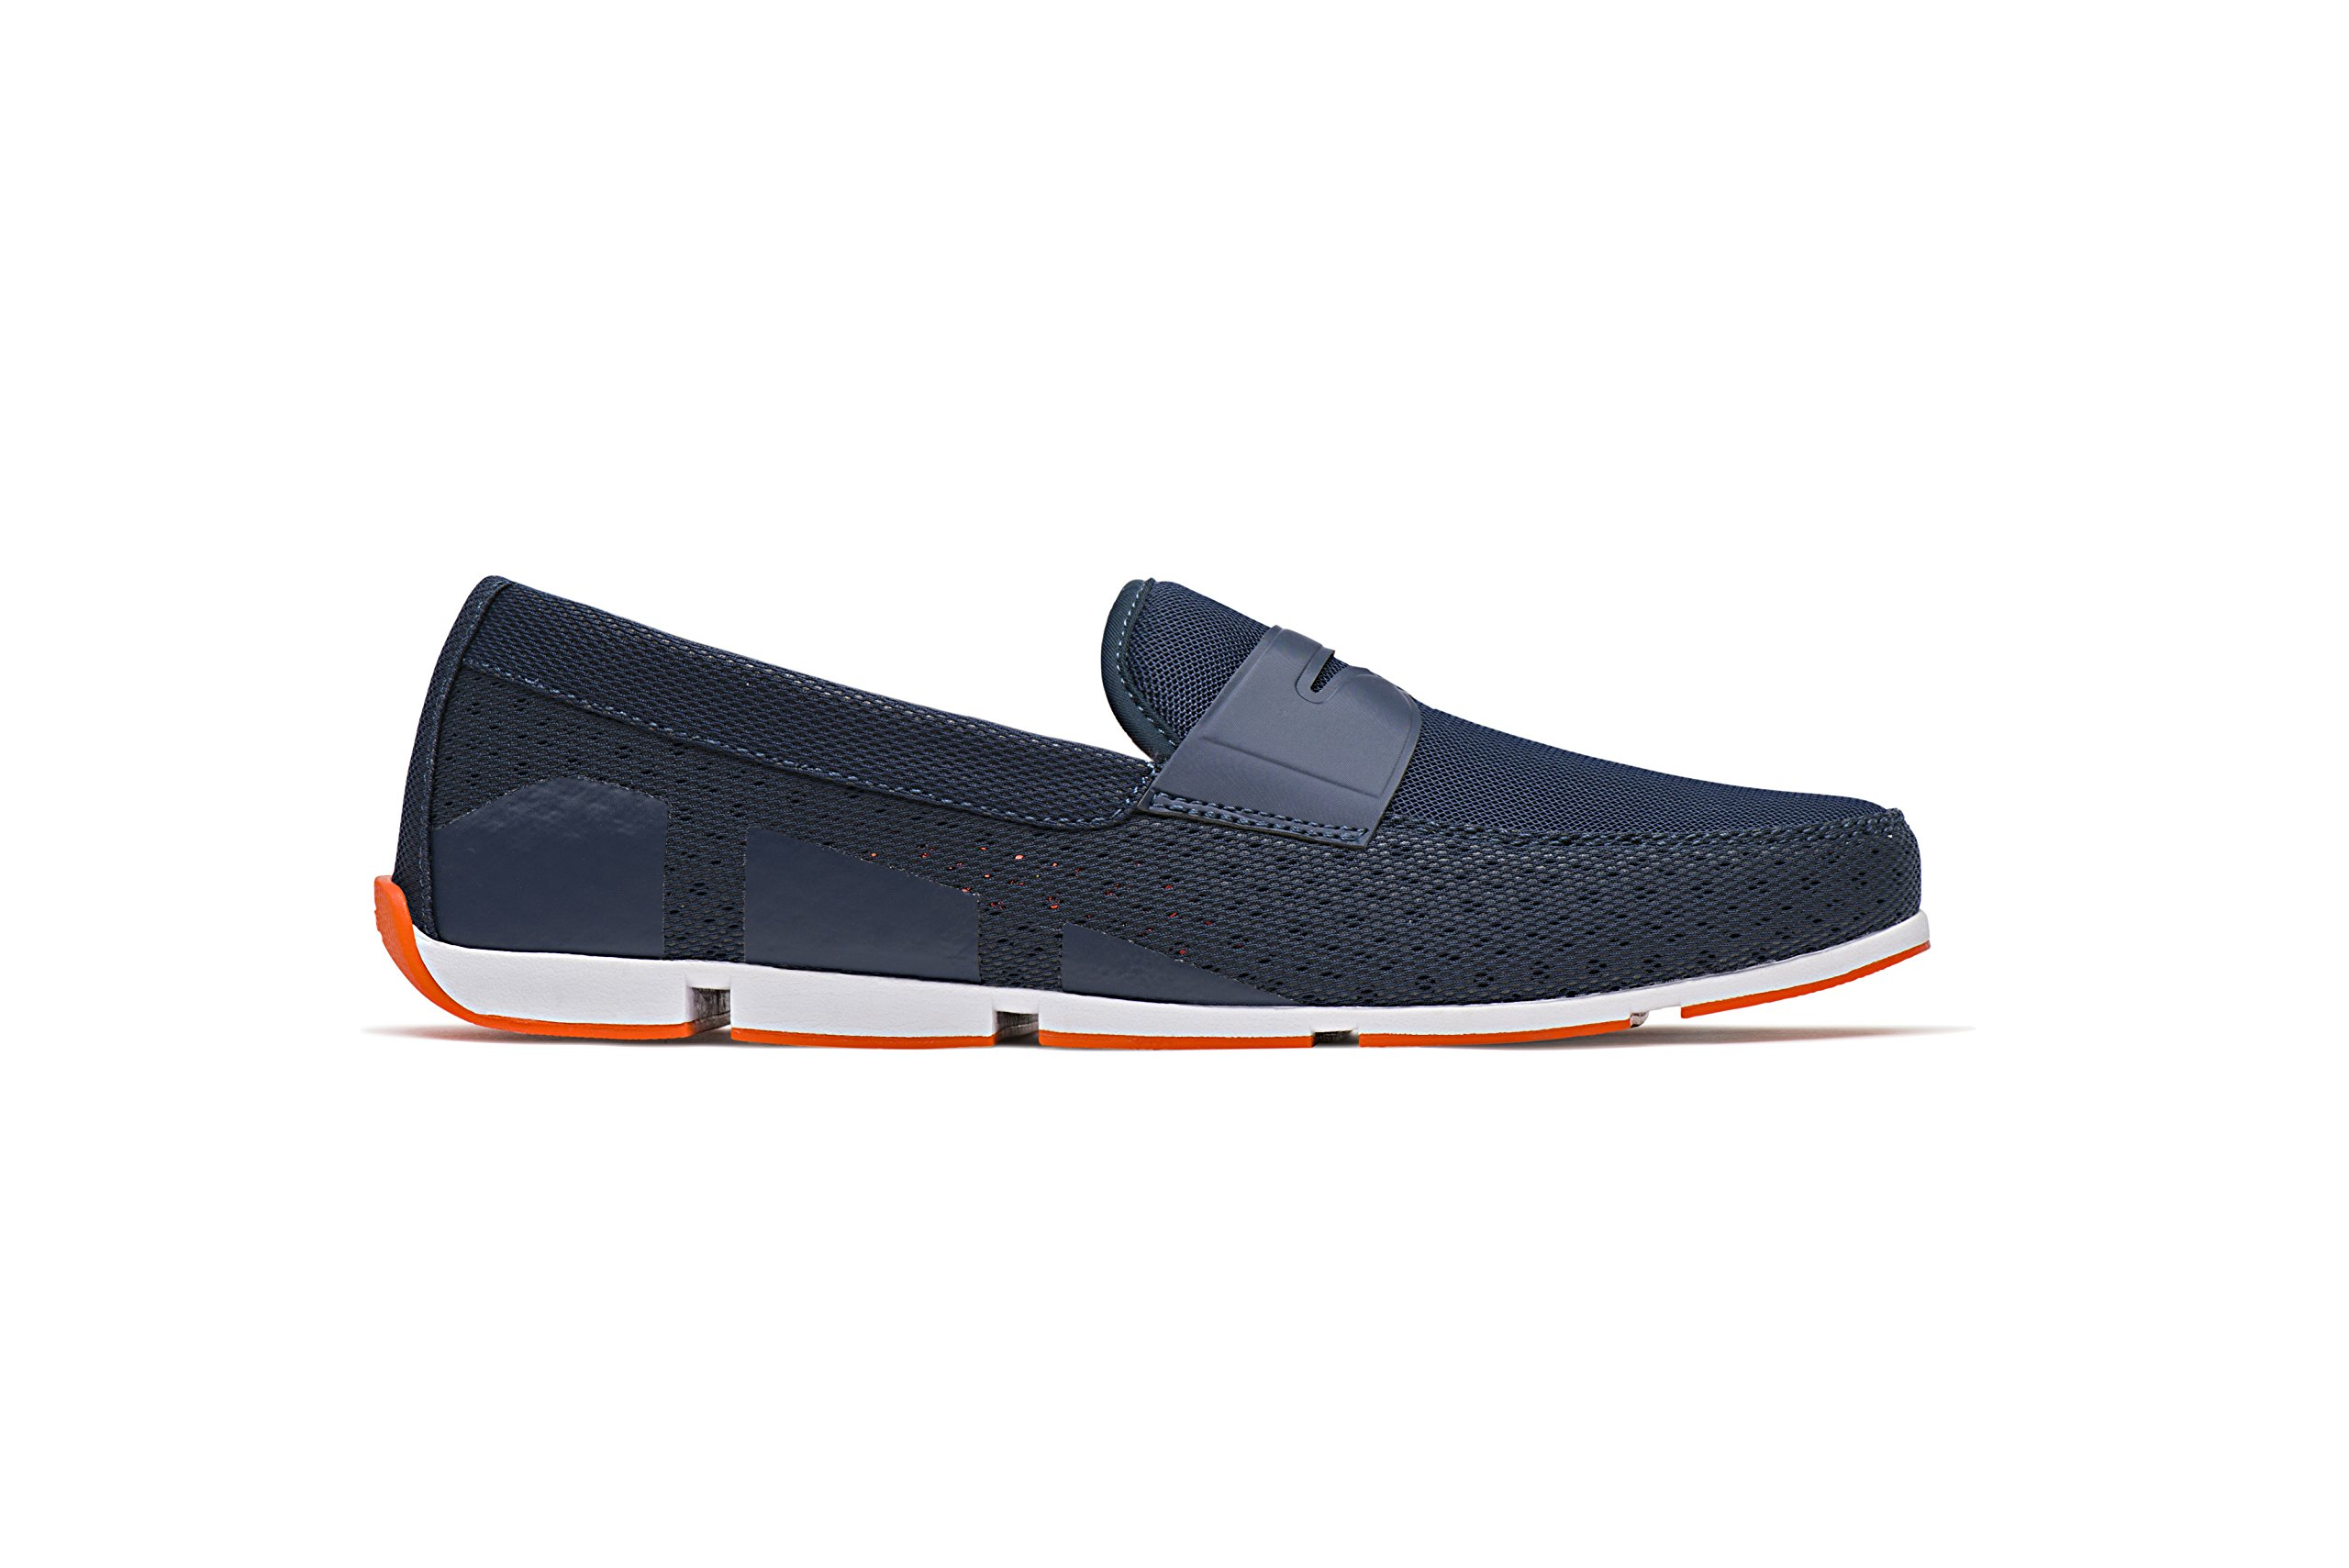 SWIMS Men's Breeze Penny Loafer for Pool and Summer - Navy, 12